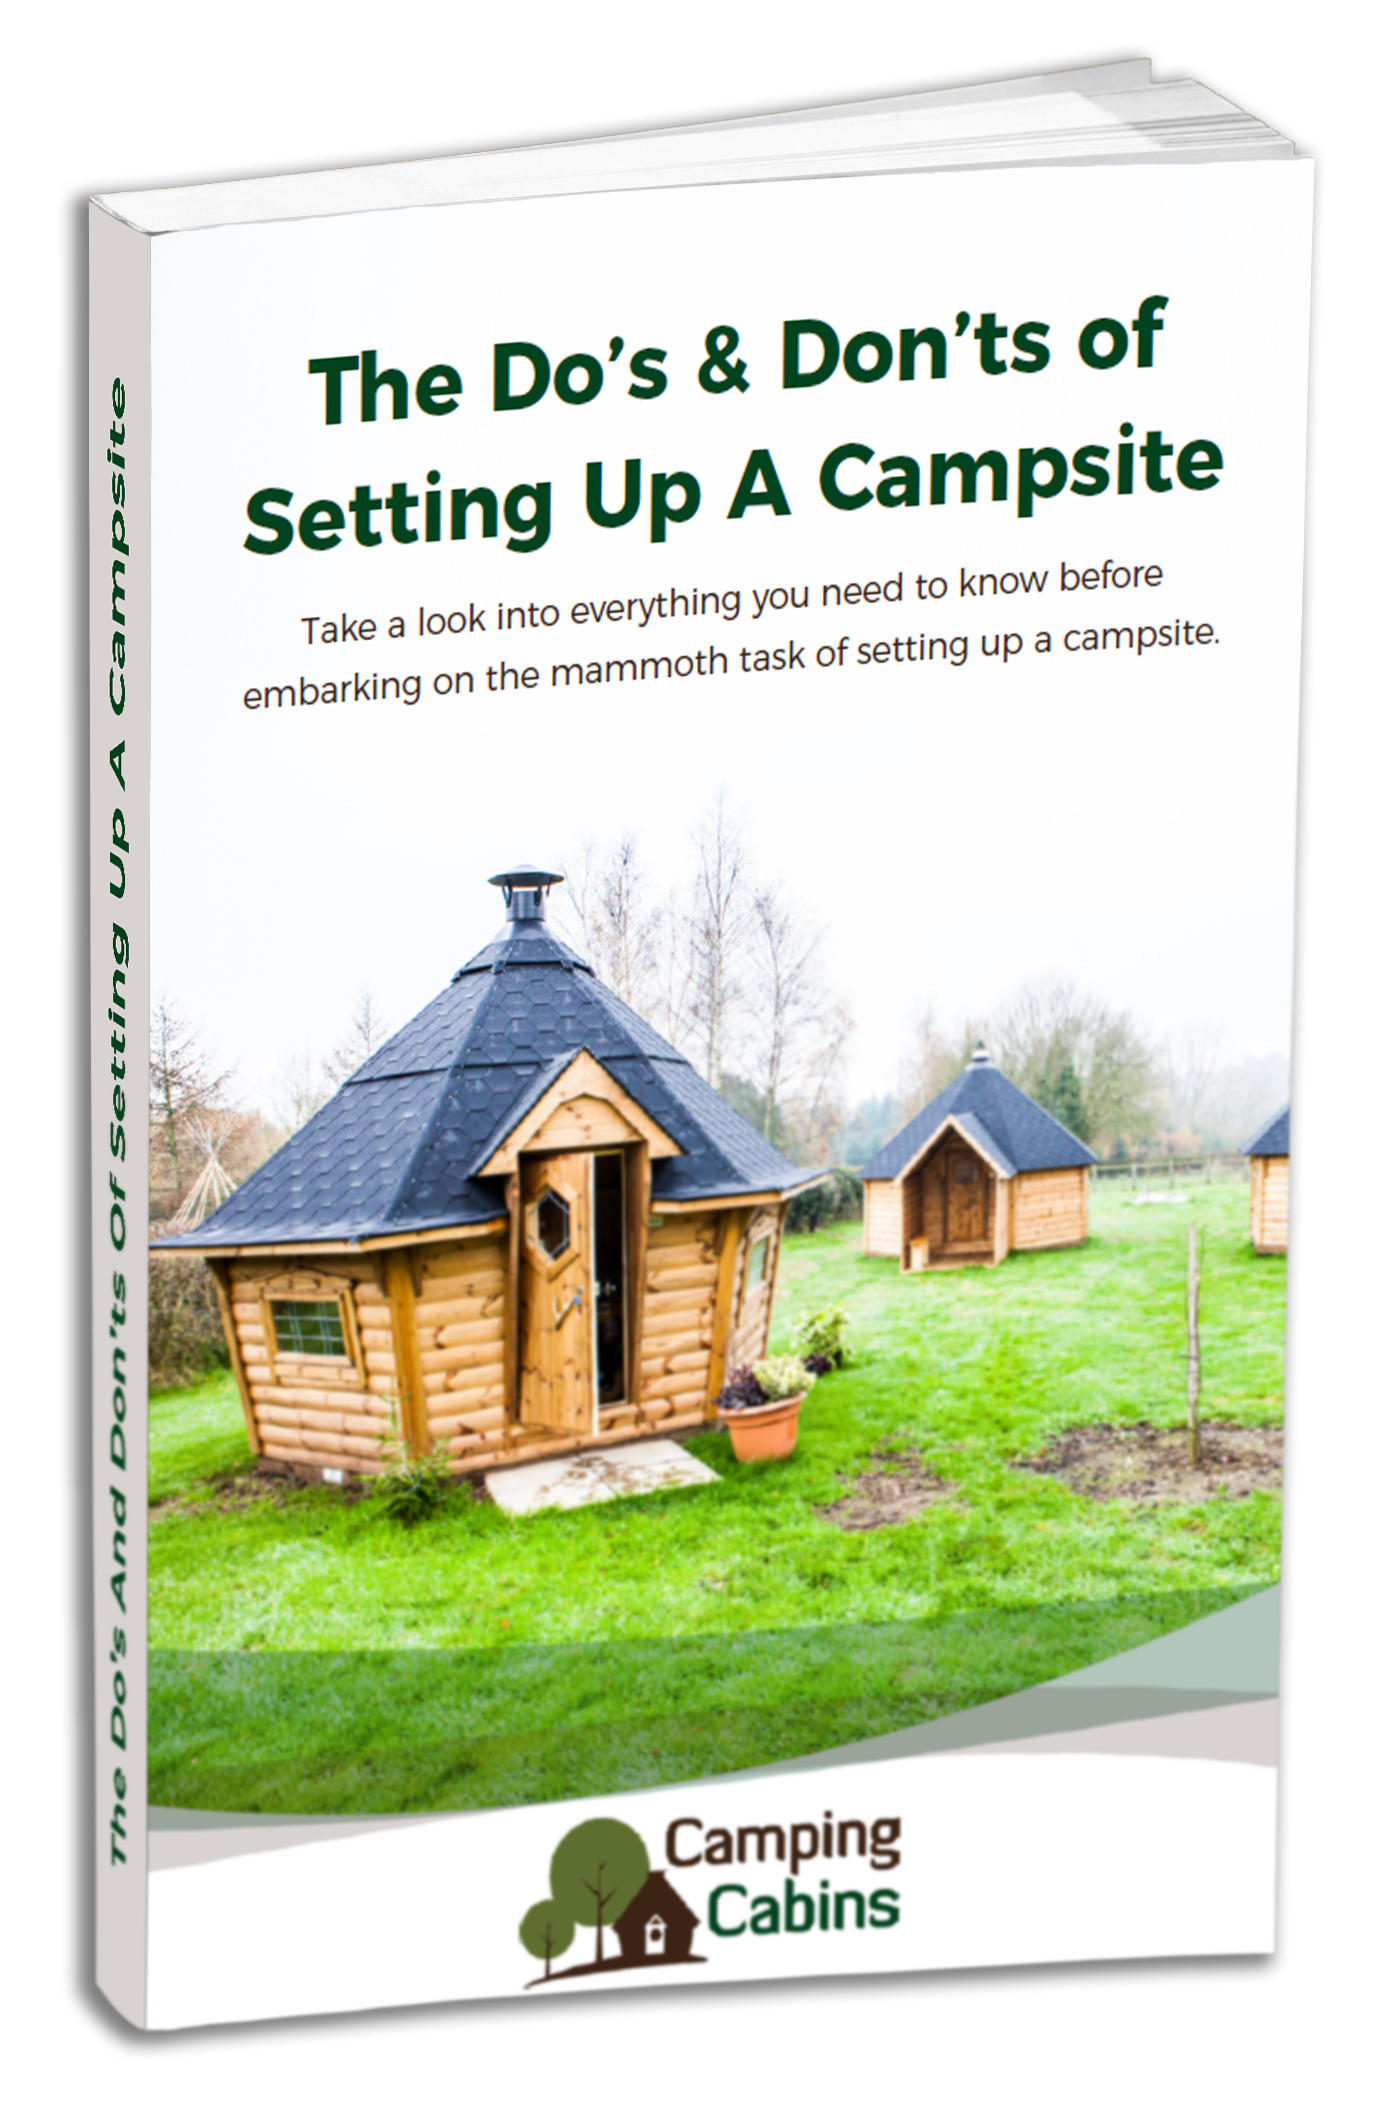 Camping Cabins Guide Cover Mock UP 1